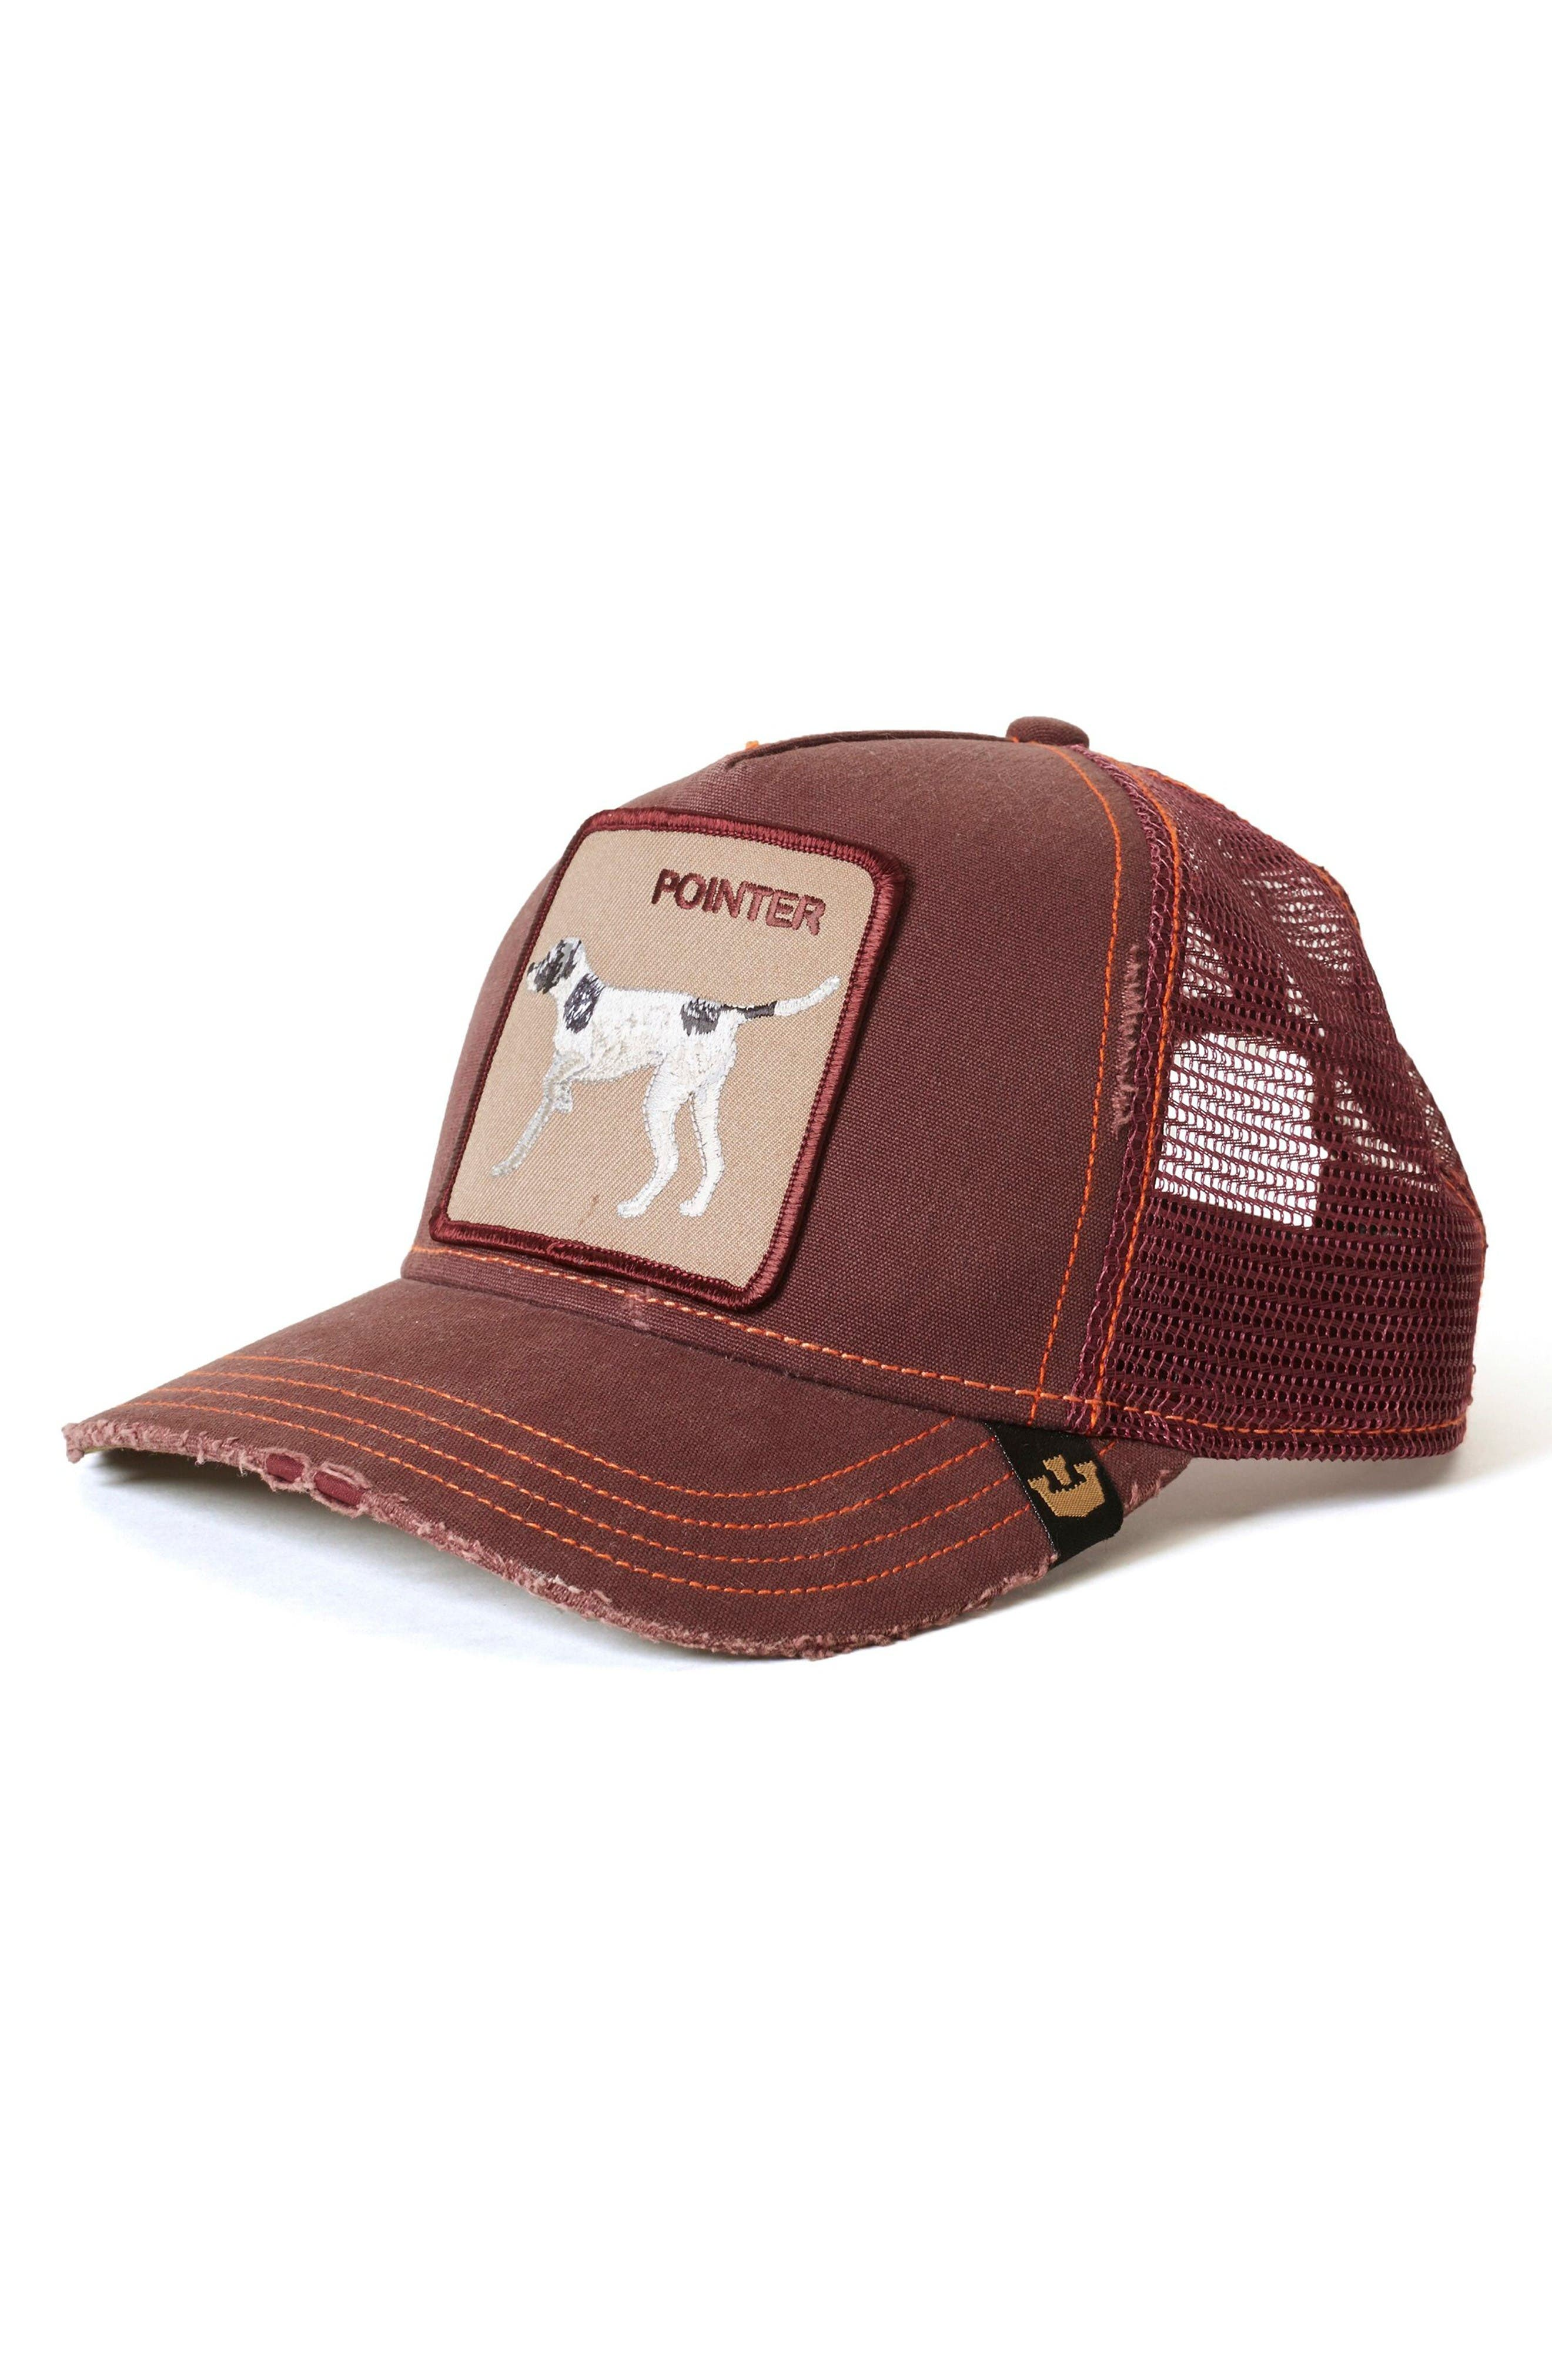 GOORIN BROTHERS The Pointer Trucker Hat